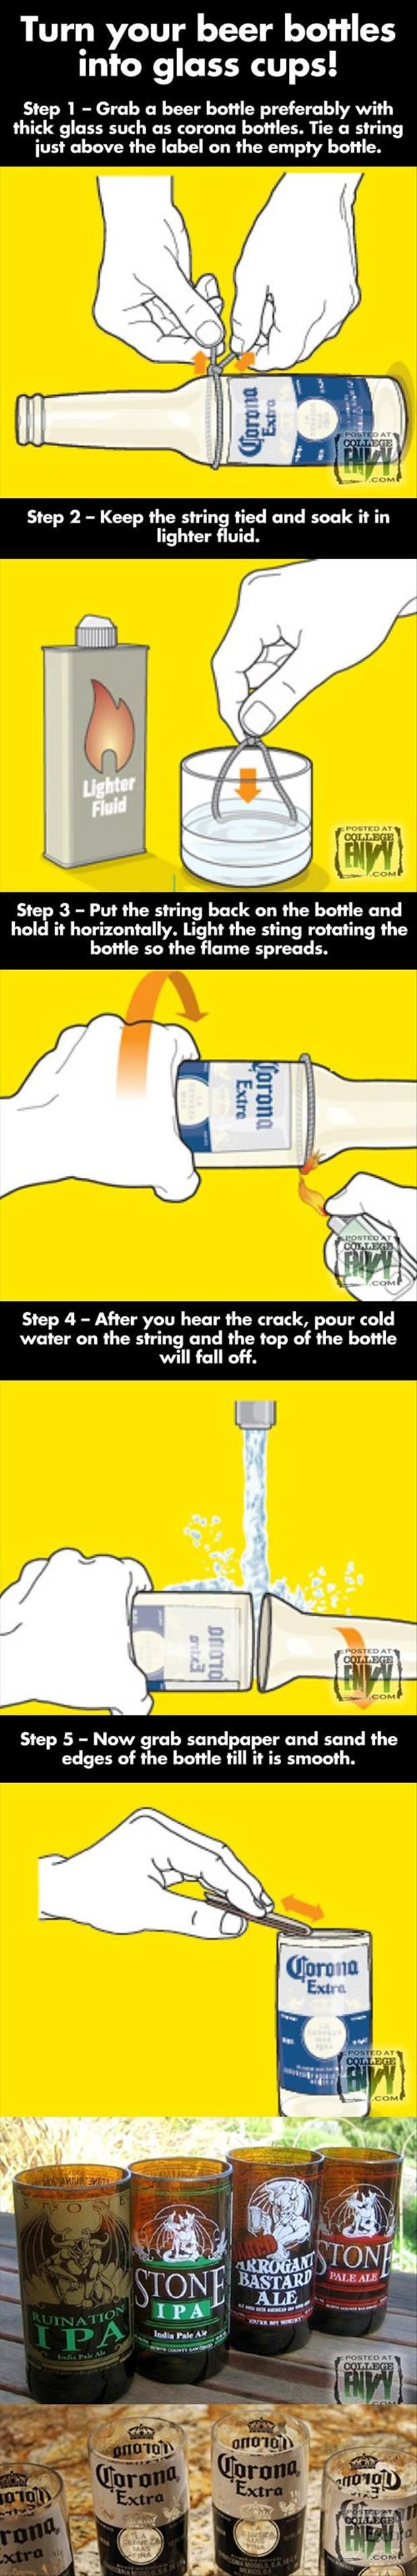 How to break a glass bottle and other crafty ideas